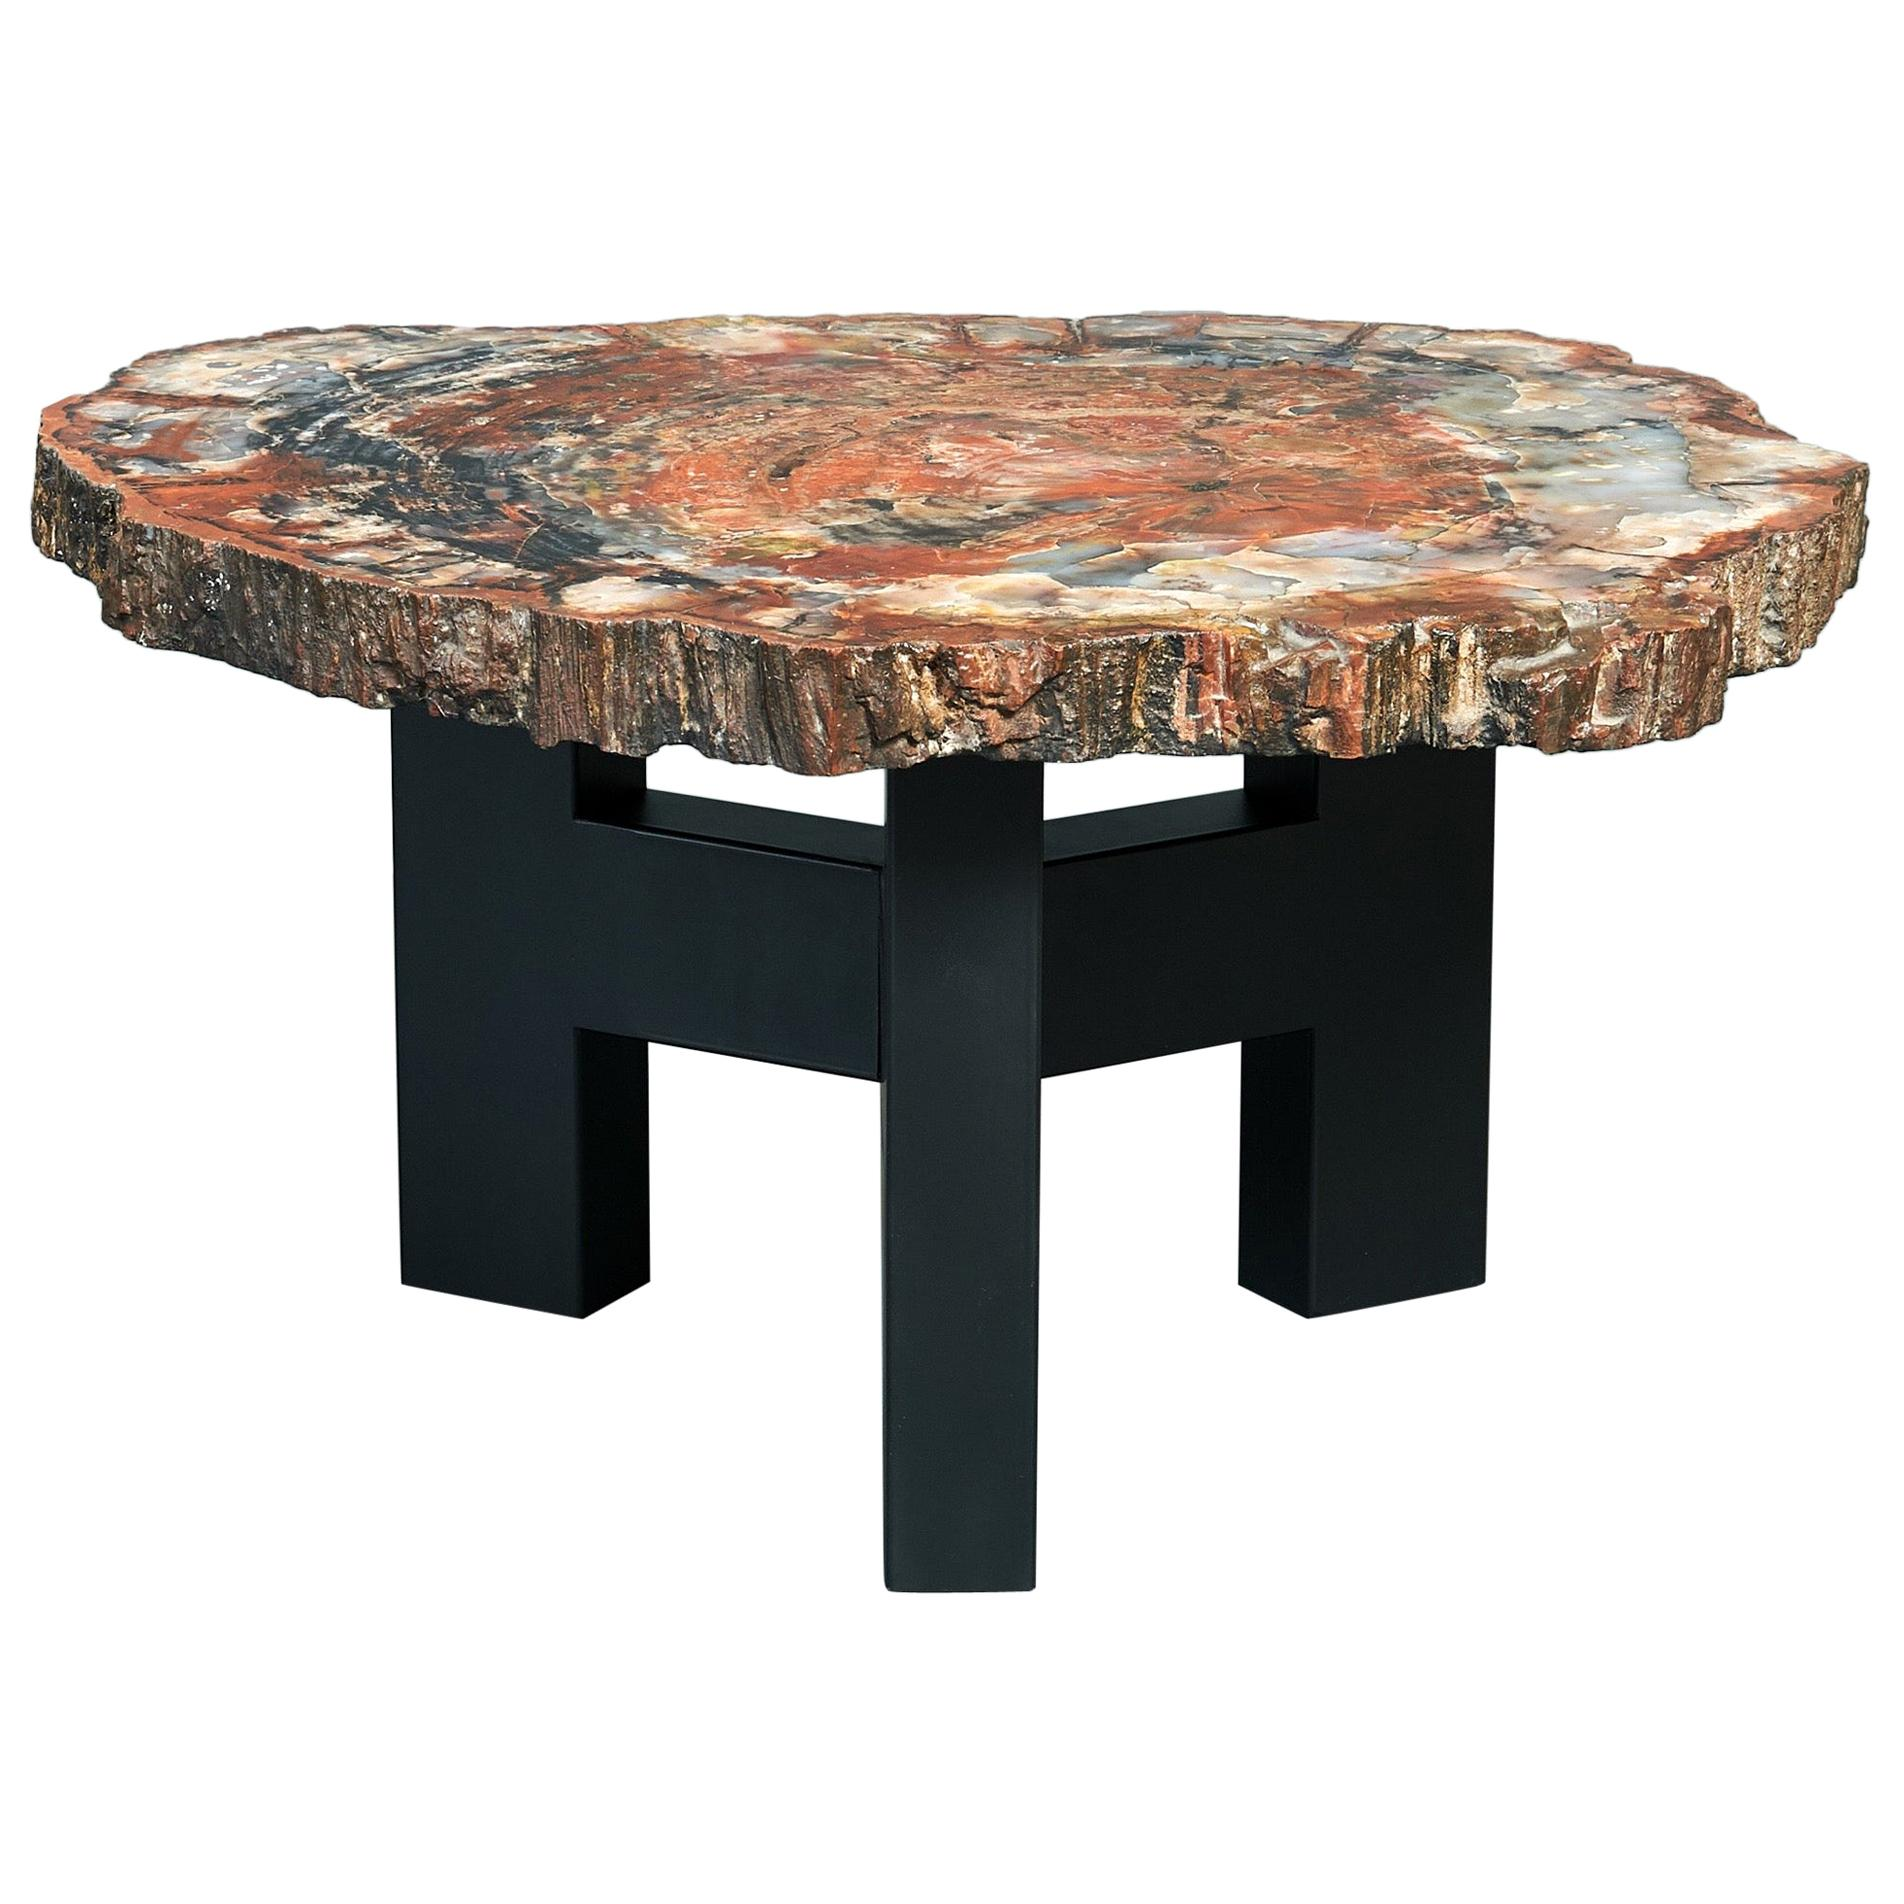 Ado Chale Rare Coffee Table in Petrified Wood and Steel, Belgium, 1968